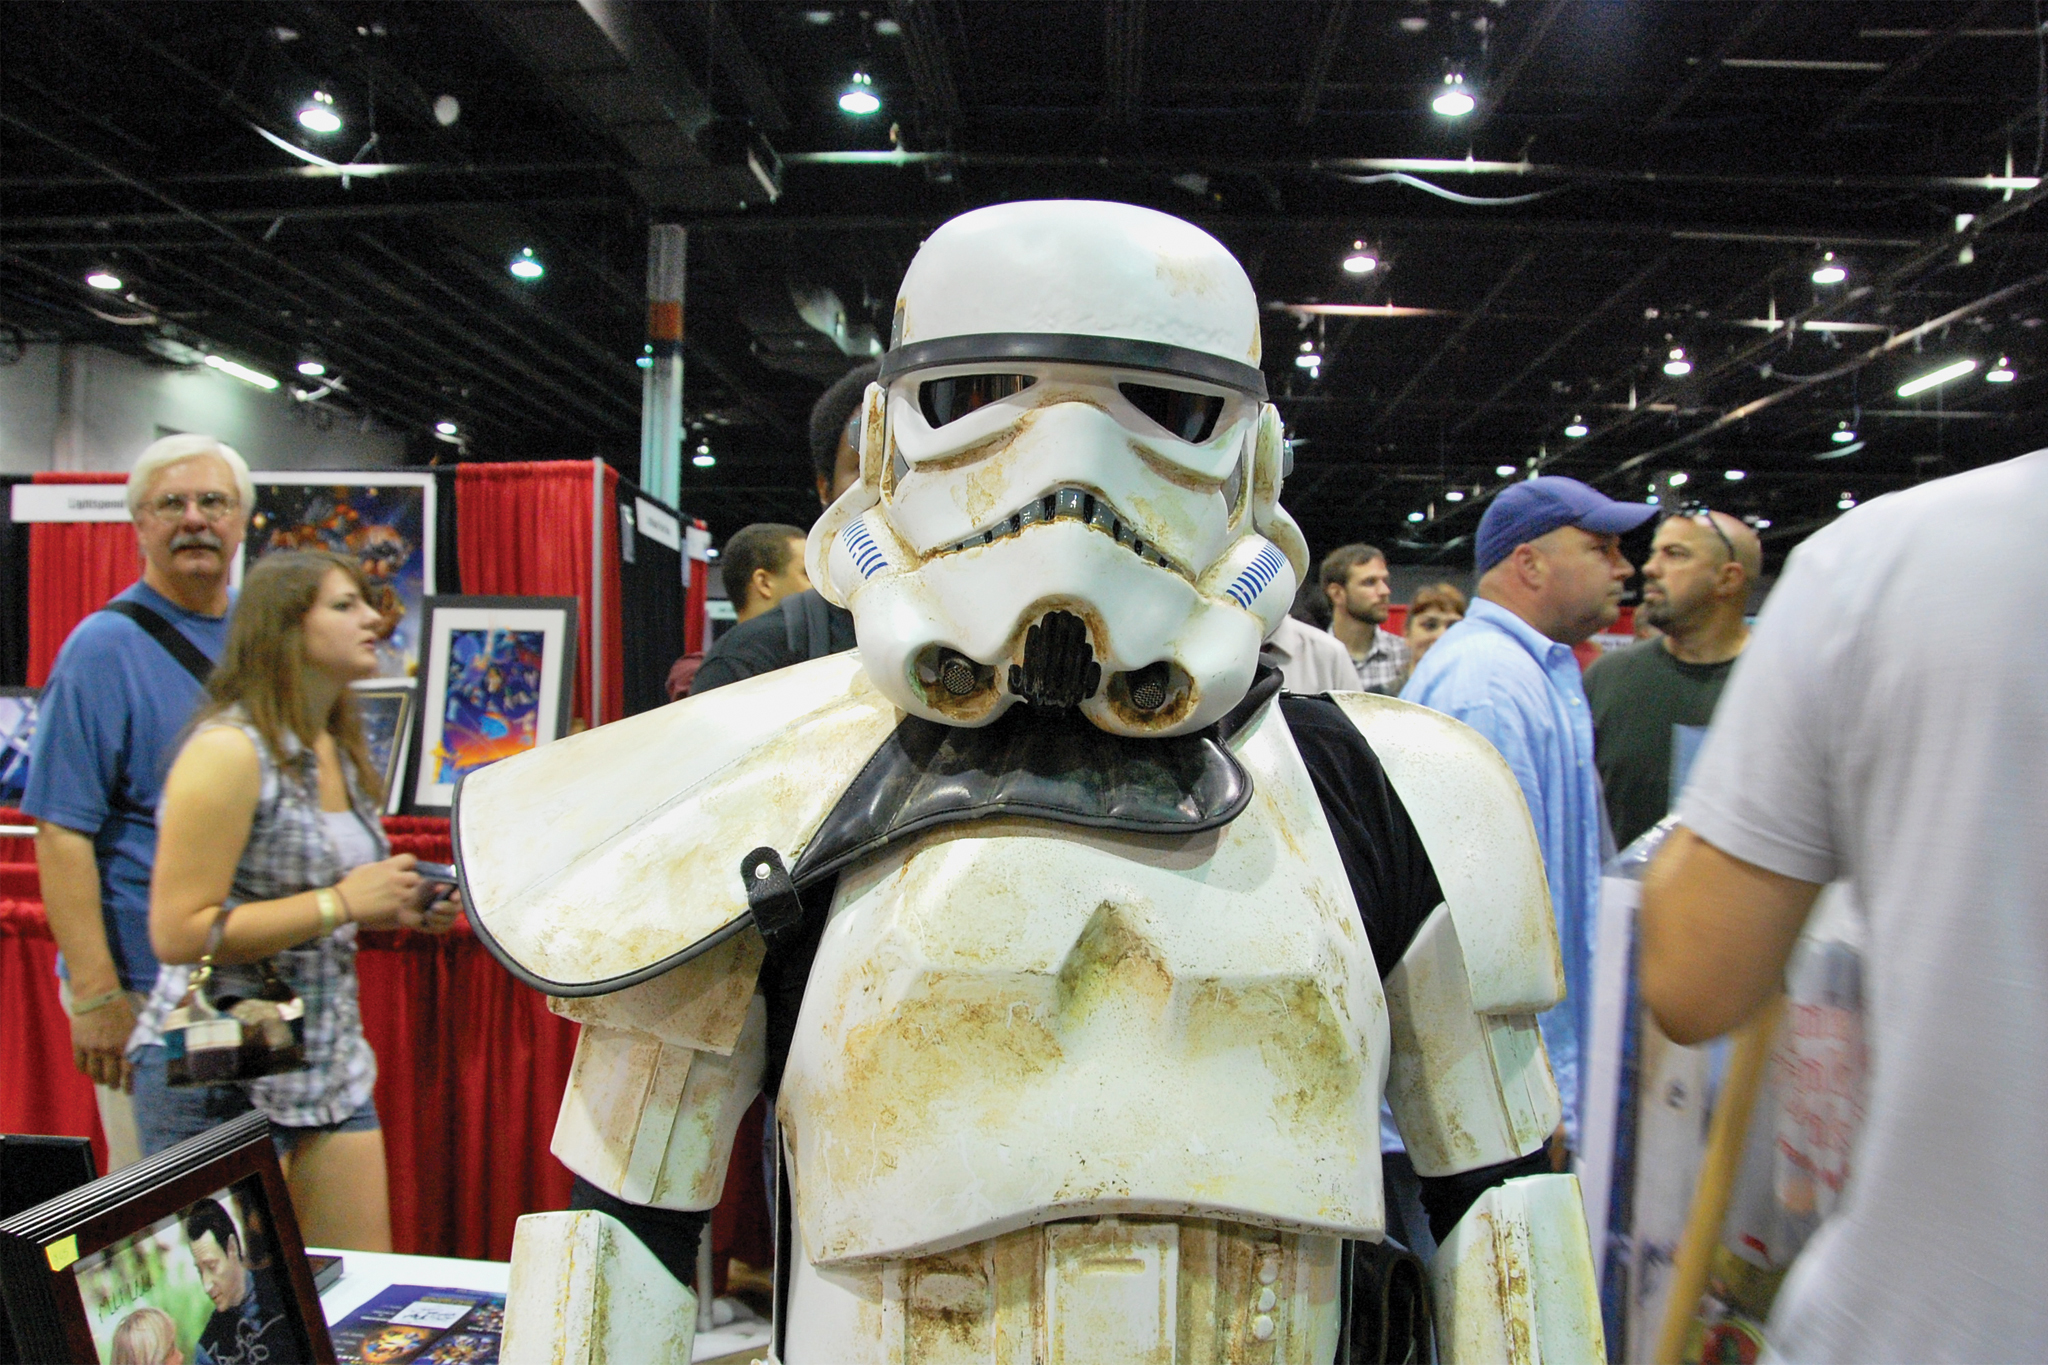 New York Comic Con 2012: The five best events (2012)